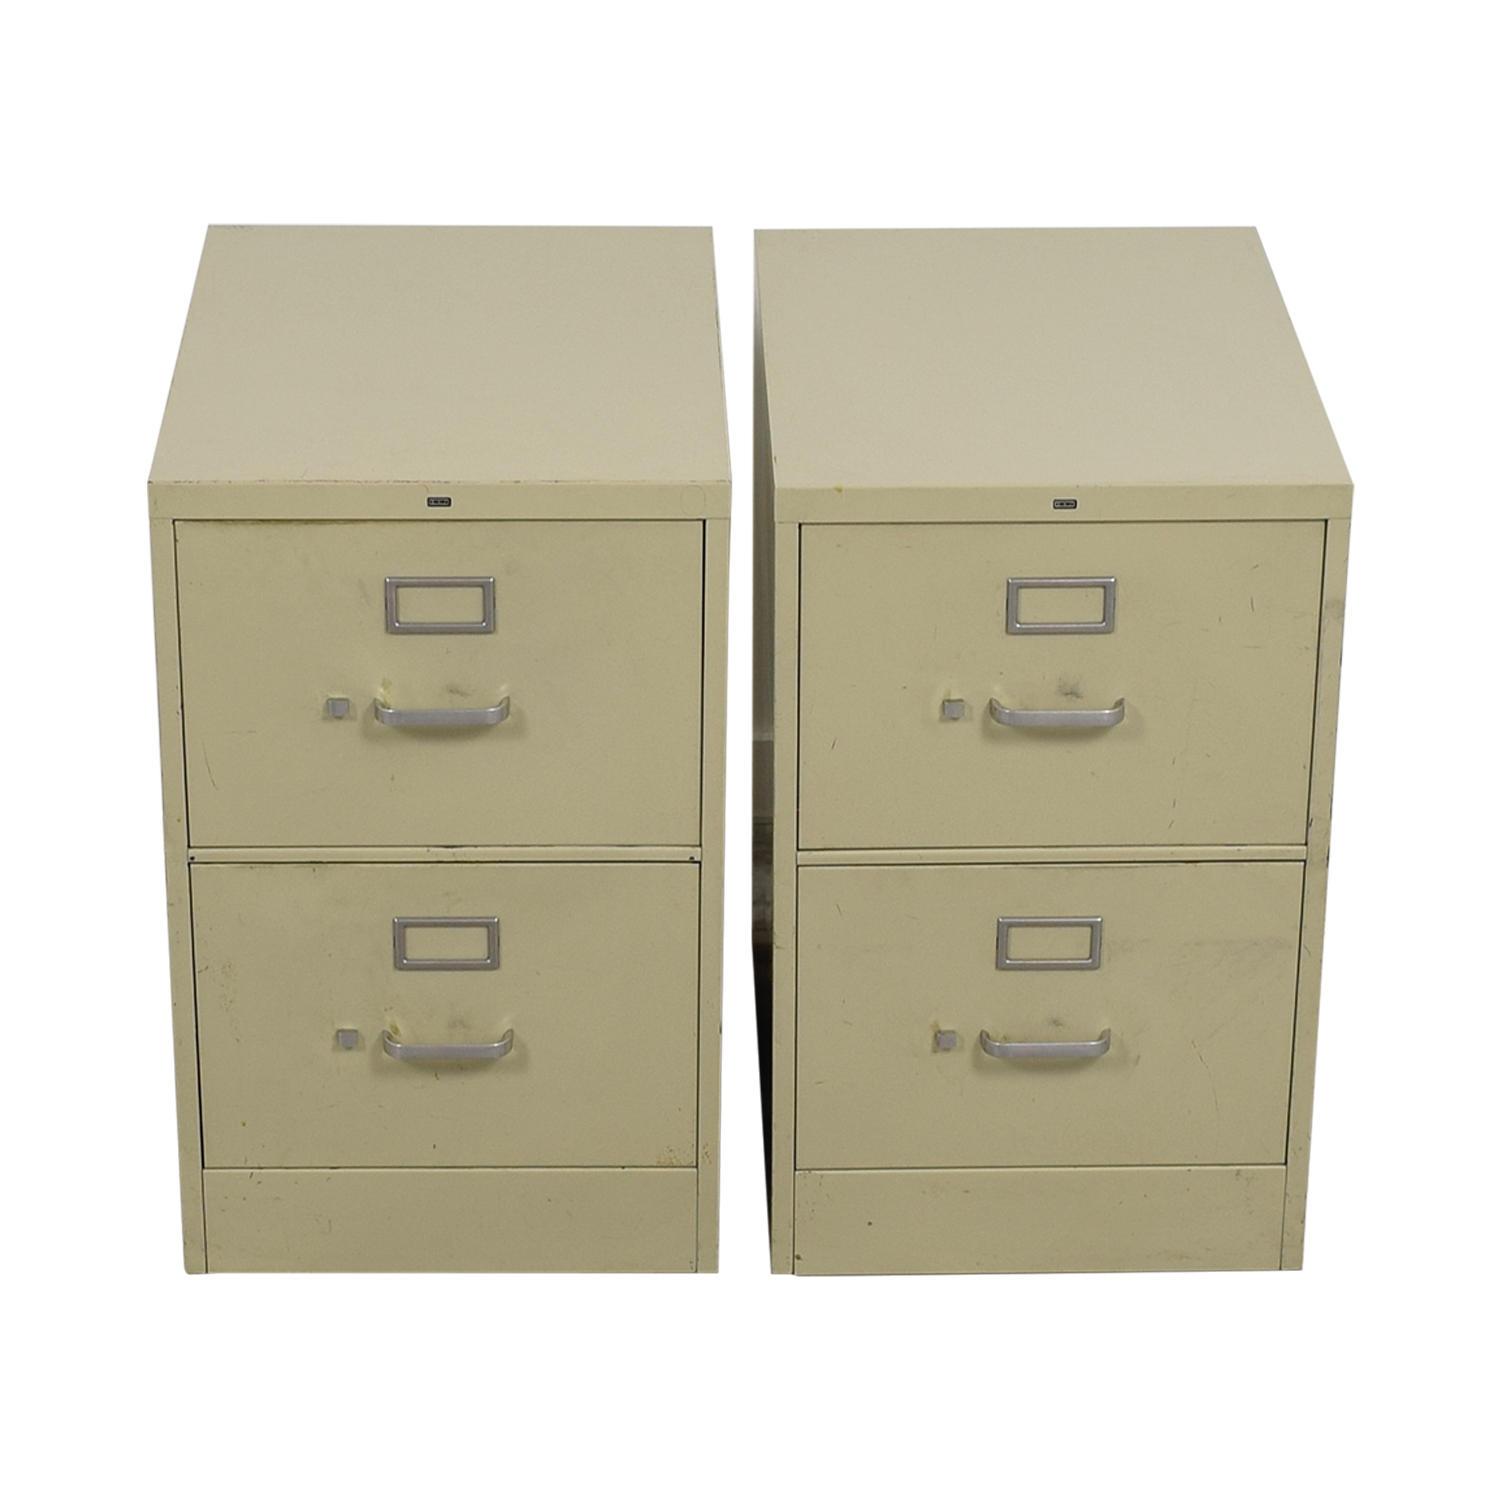 Two-Drawer Grey Metal File Cabinets